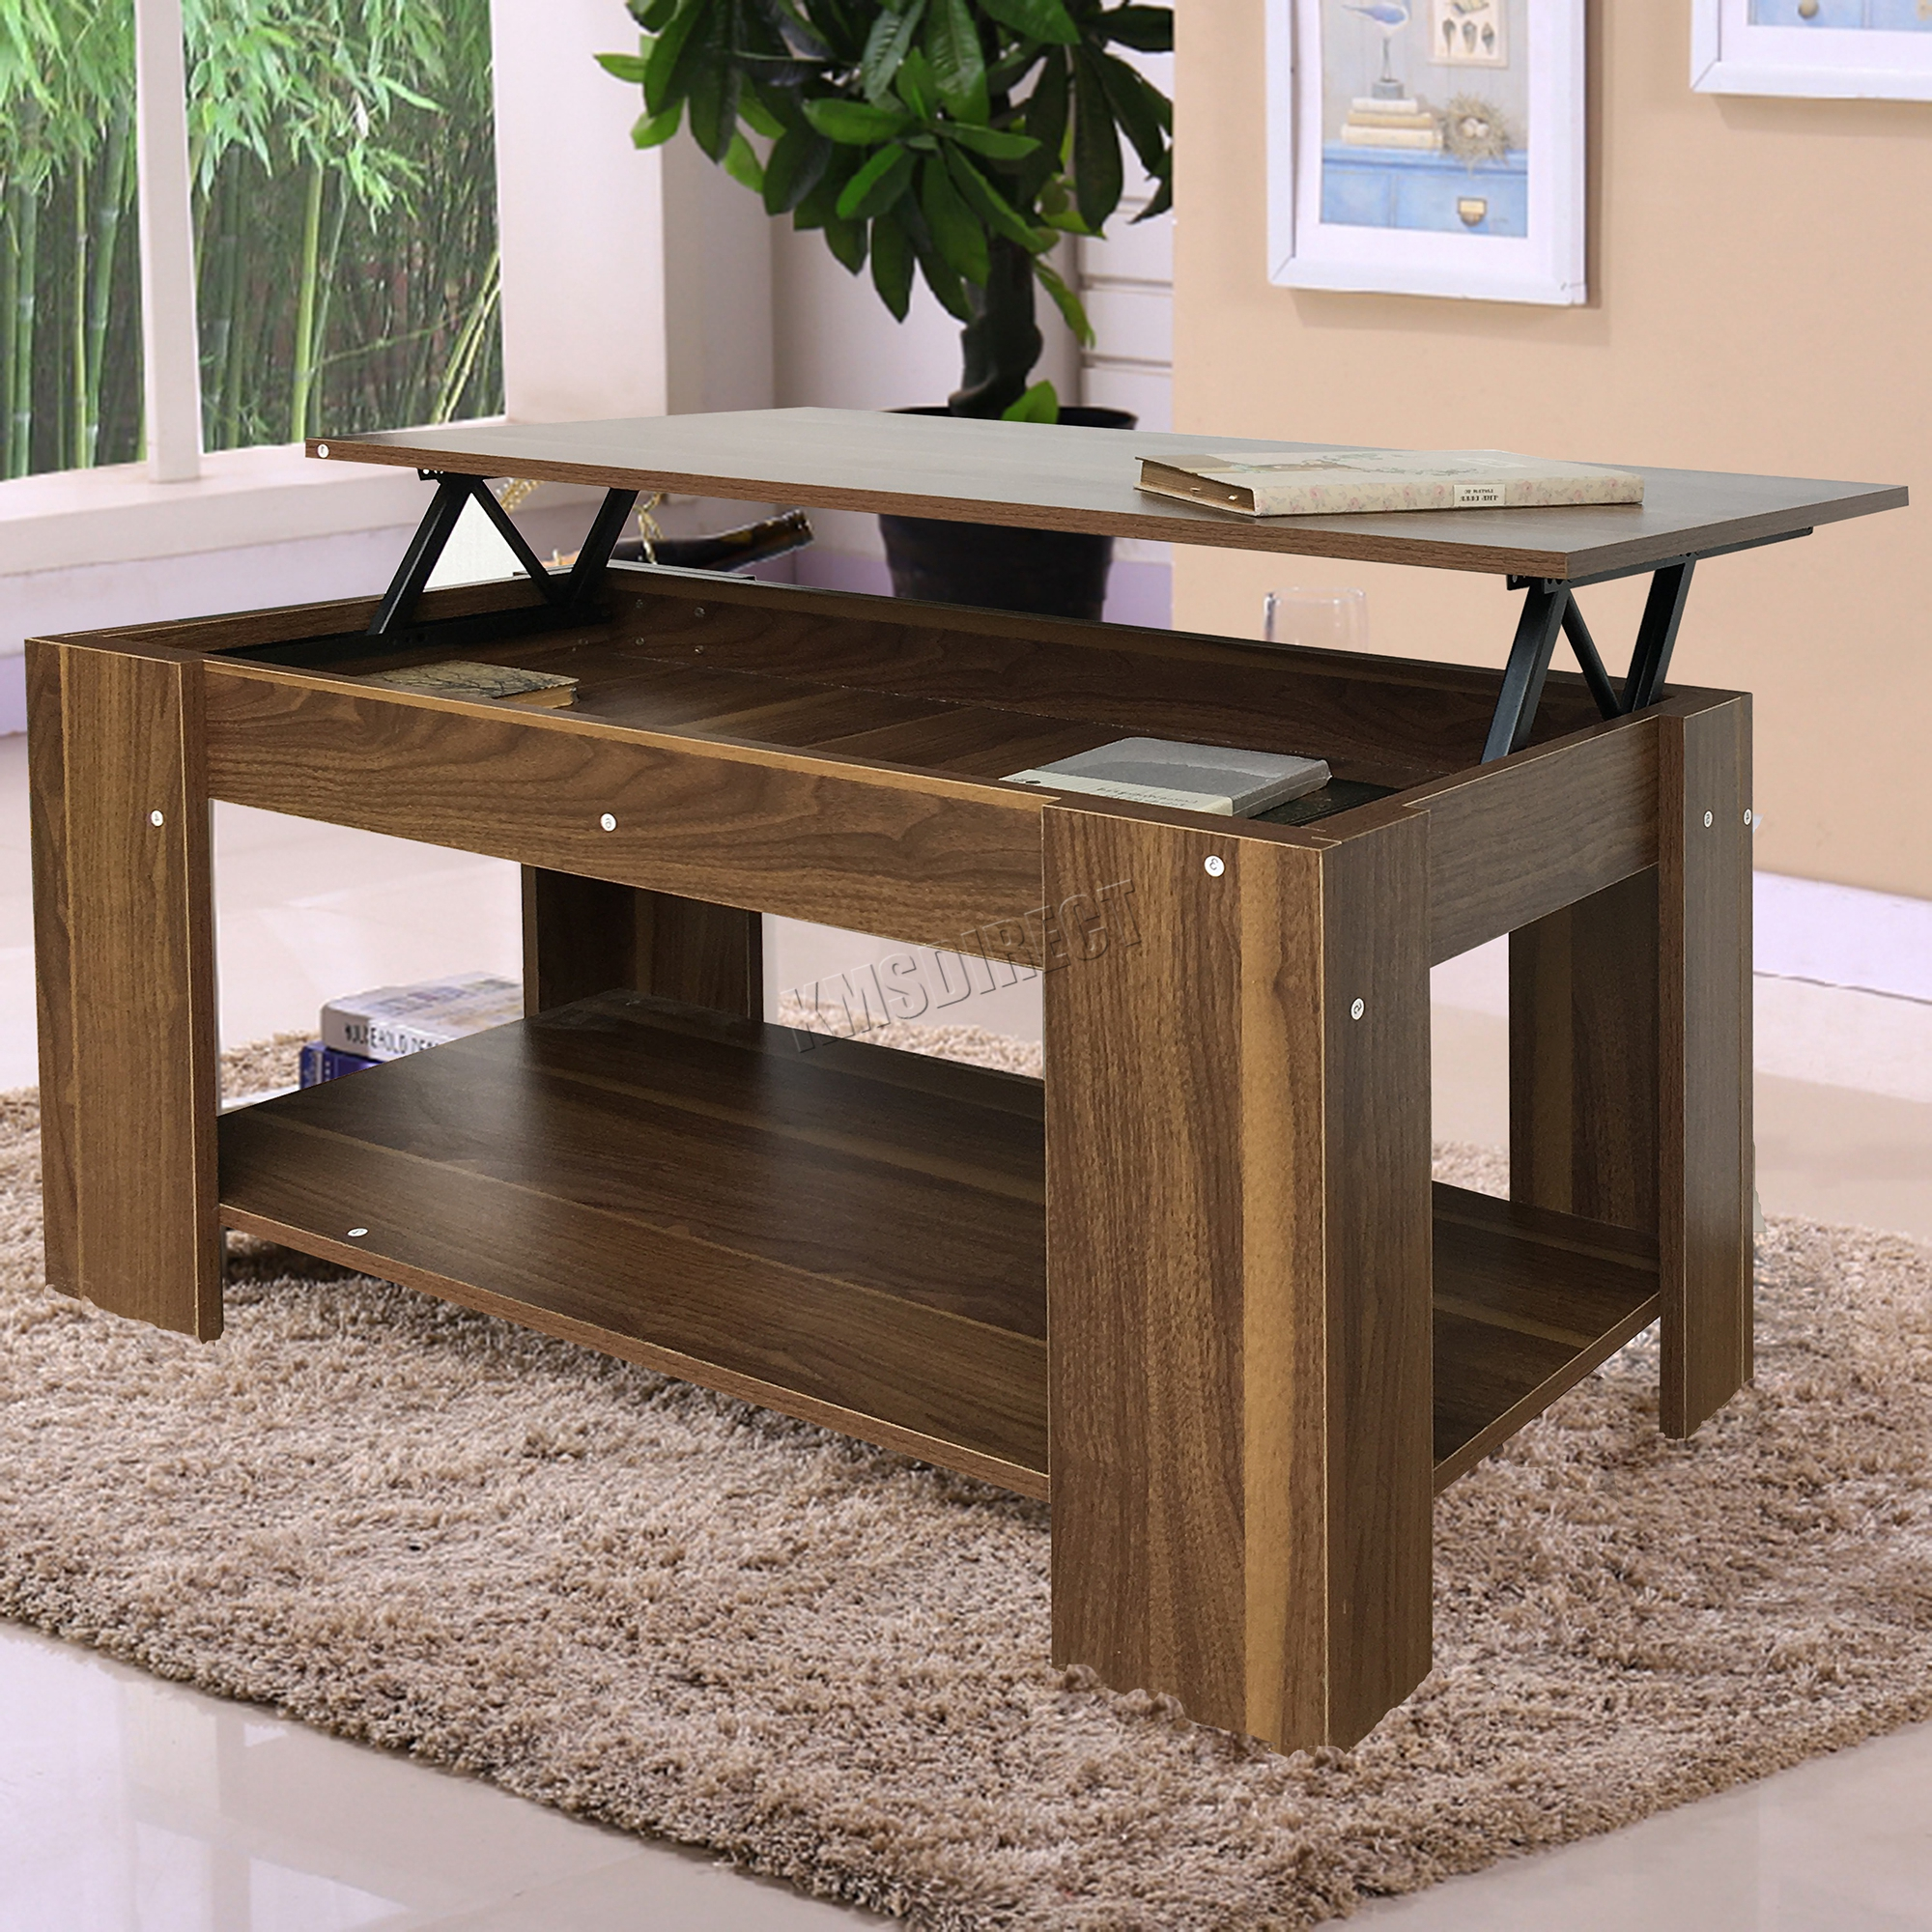 Foxhunter lift up top coffee table mdf with storage and shelf foxhunter lift up top coffee table mdf with geotapseo Image collections